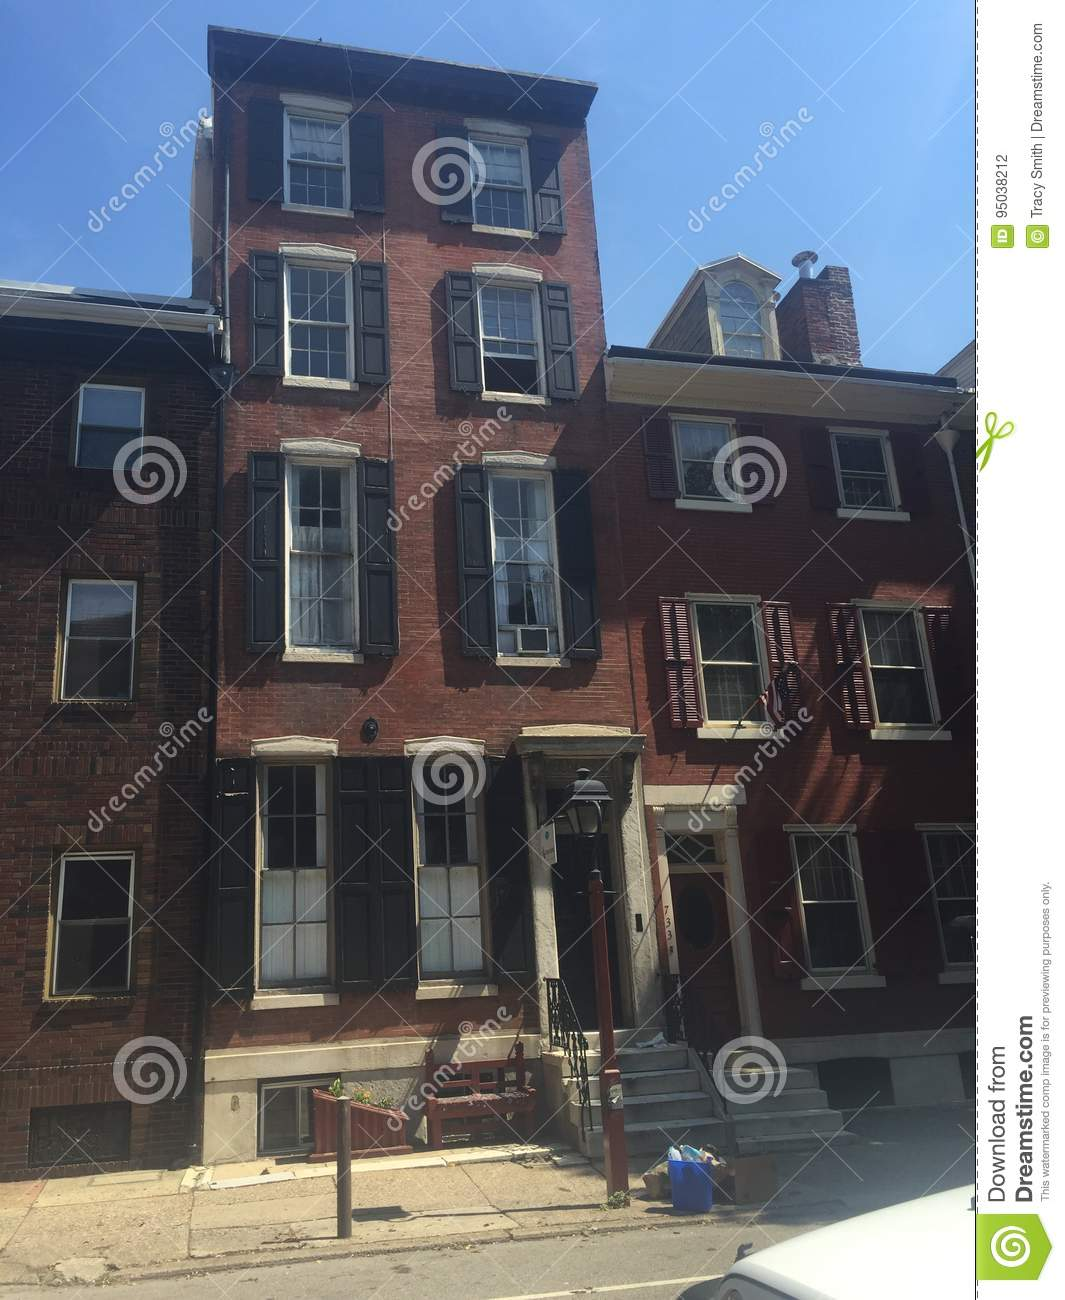 Philadelphia Washington Square West Brownstone Houses On